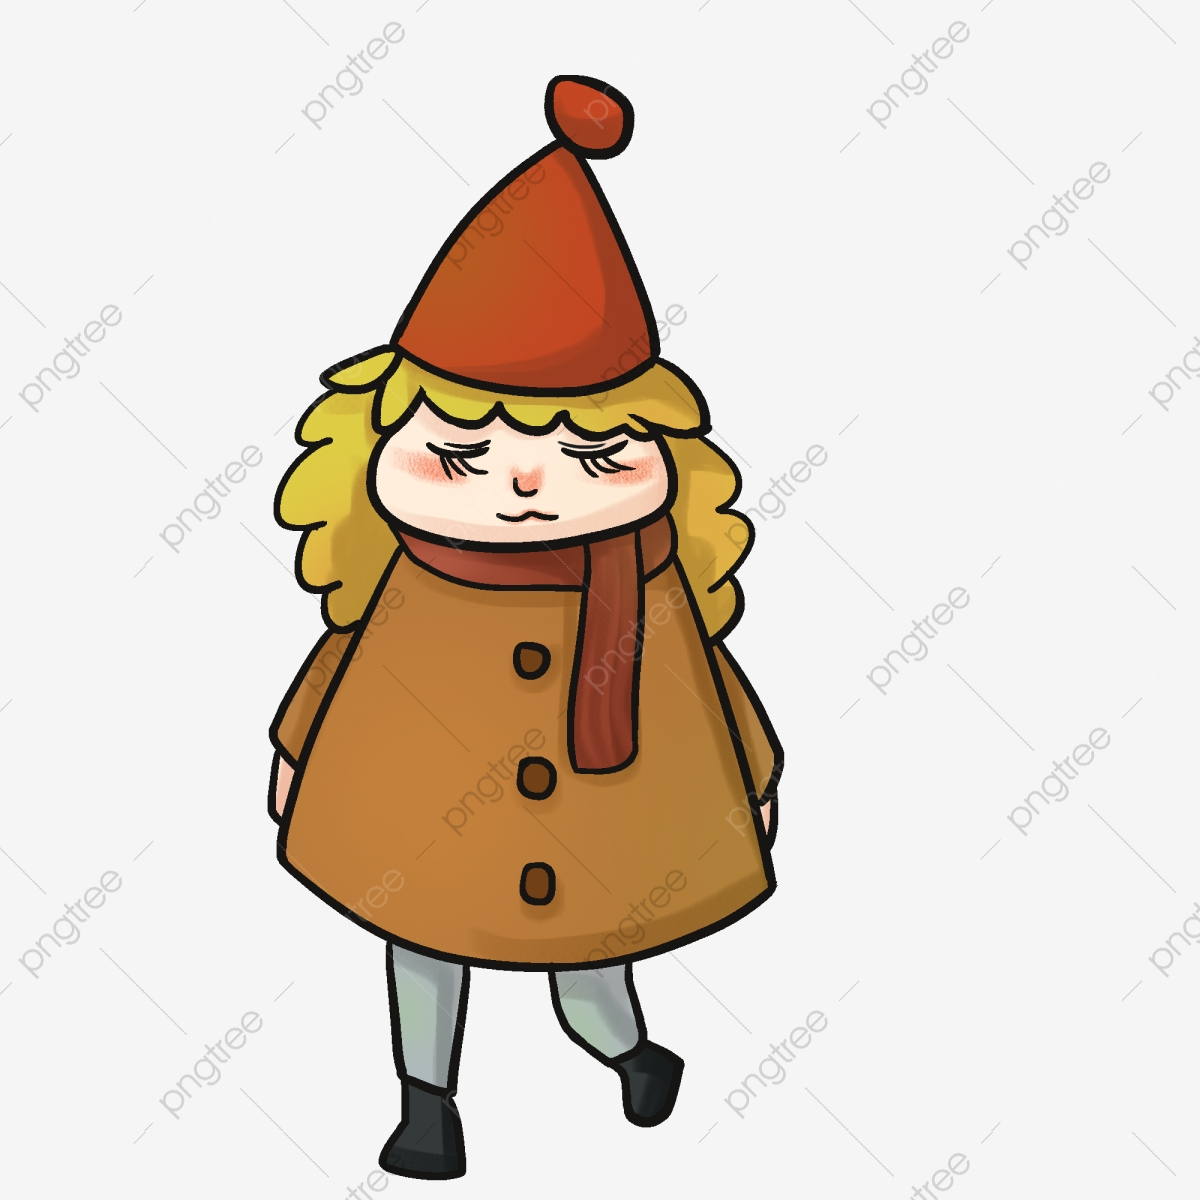 topless png images vector and psd files free download on pngtree https pngtree com freepng winter fashion trend yellow knit hat thick collar coffee colored topless 3892159 html